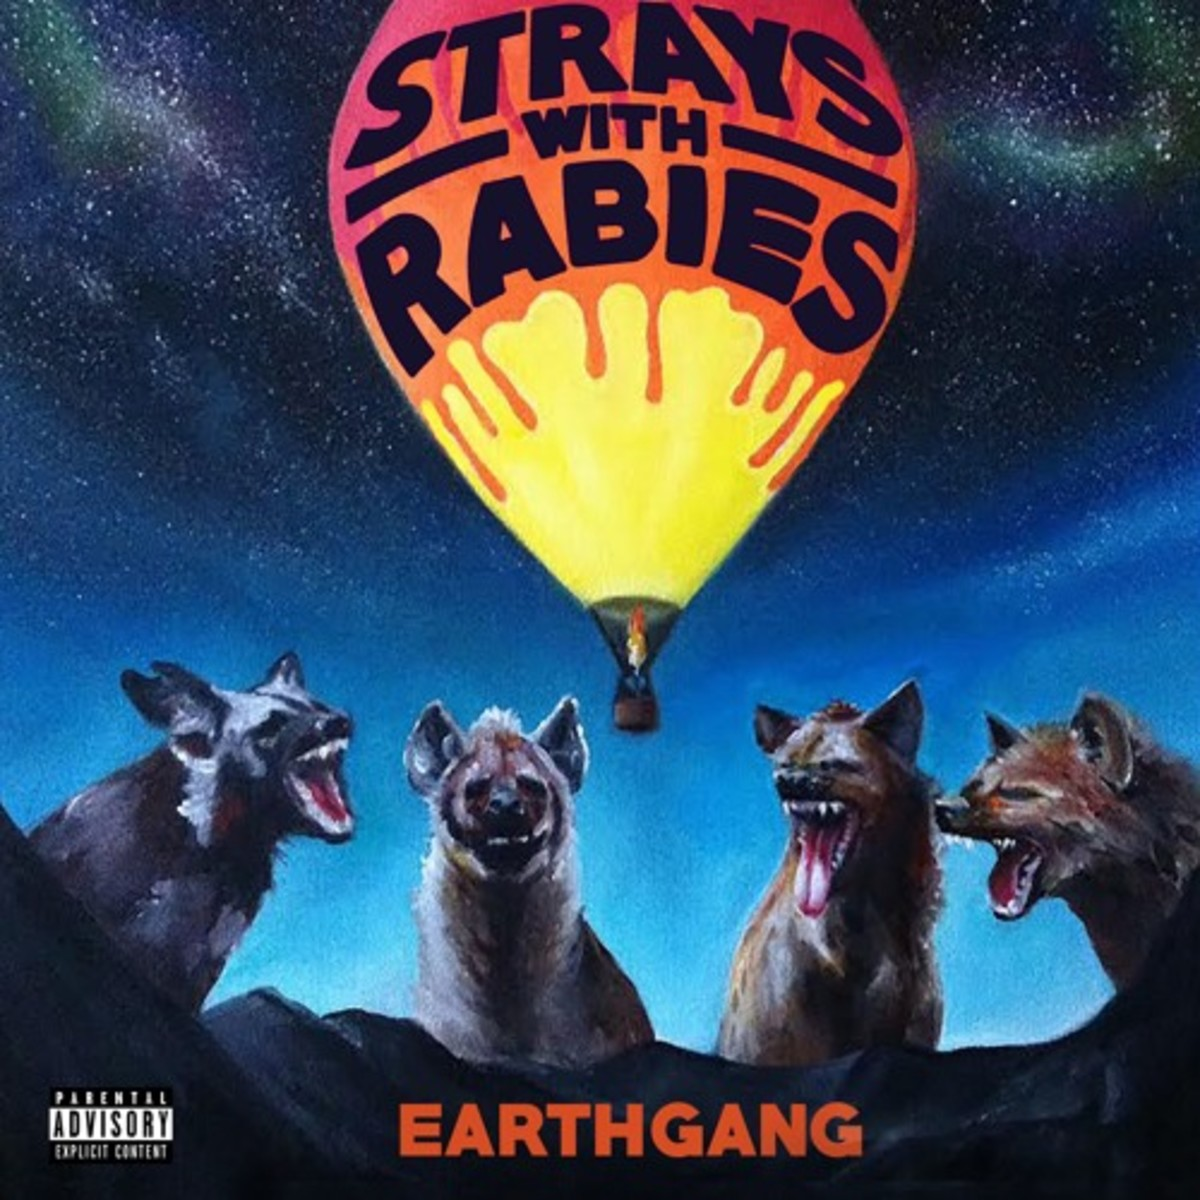 earthgang-strays-with-rabies.jpg